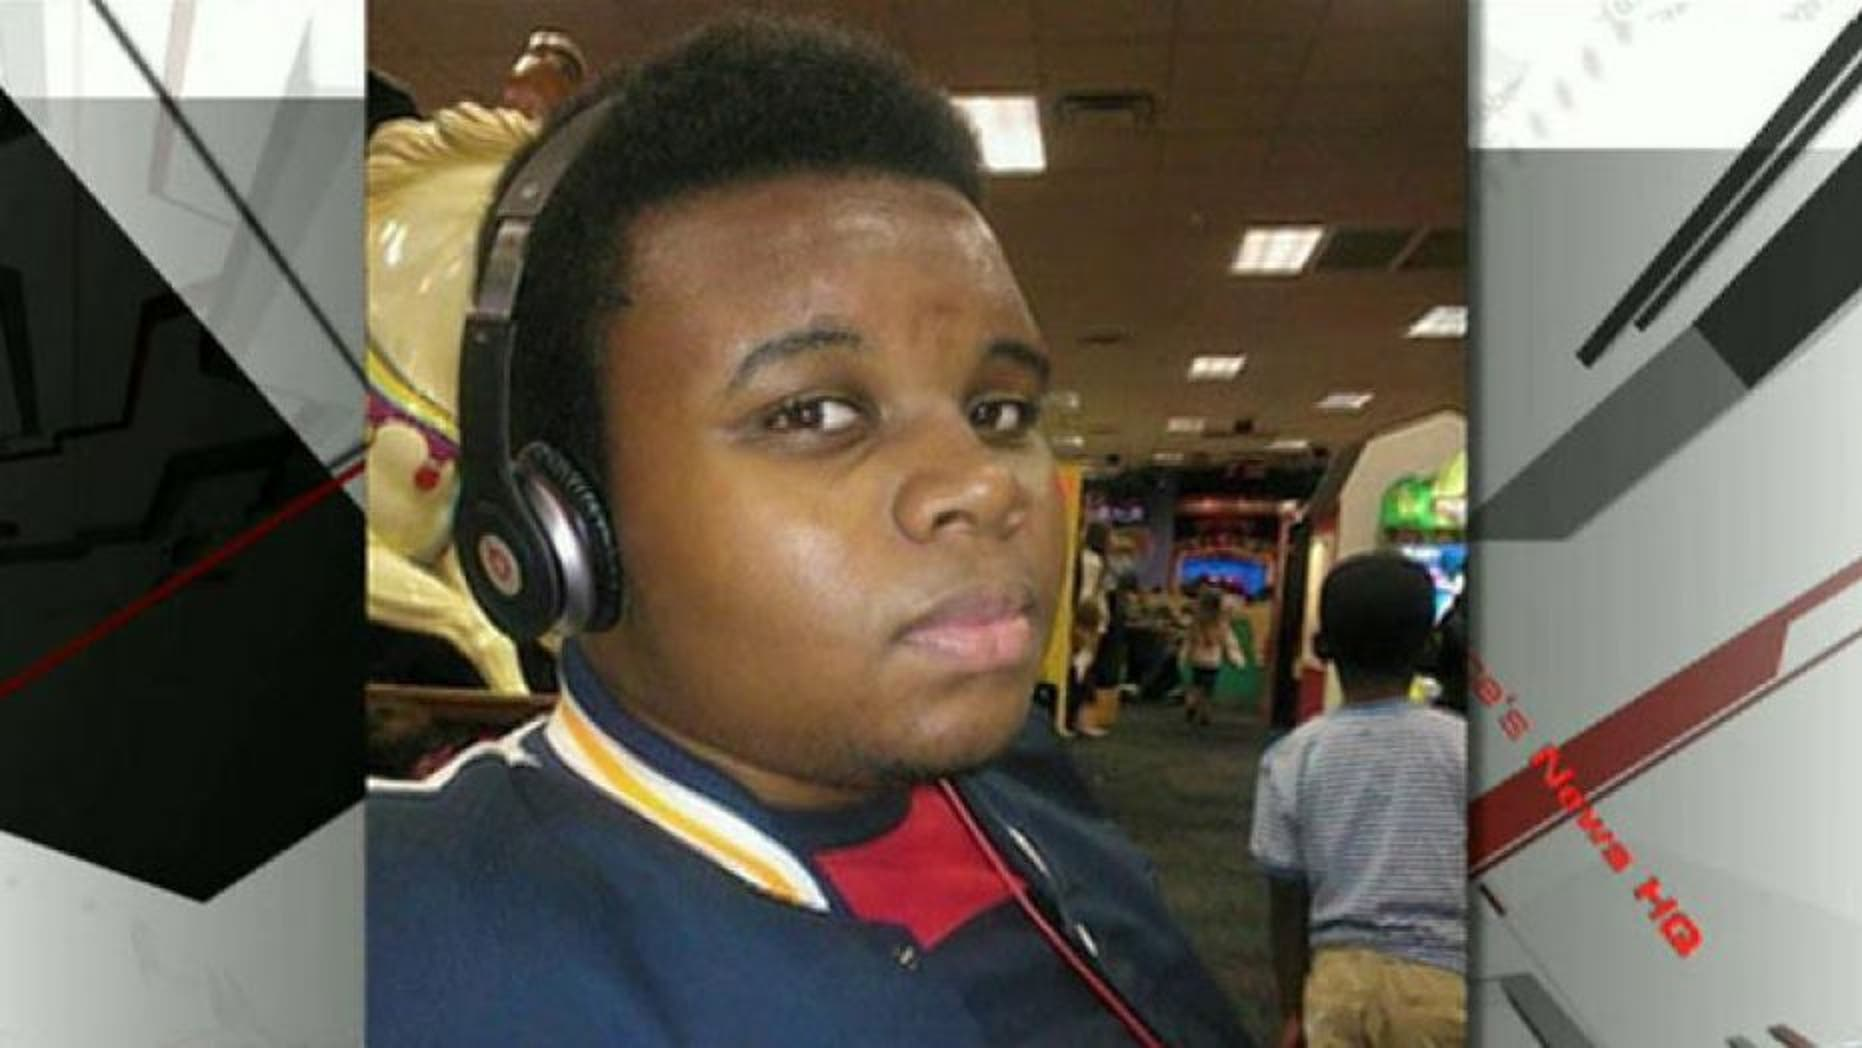 Westlake Legal Group MichaelBrown080919 This Day in History: Aug. 9 fox-news/us/this-day-in-history fox news fnc/us fnc article 33f7dd77-2f44-55aa-8722-44212c23dbc6